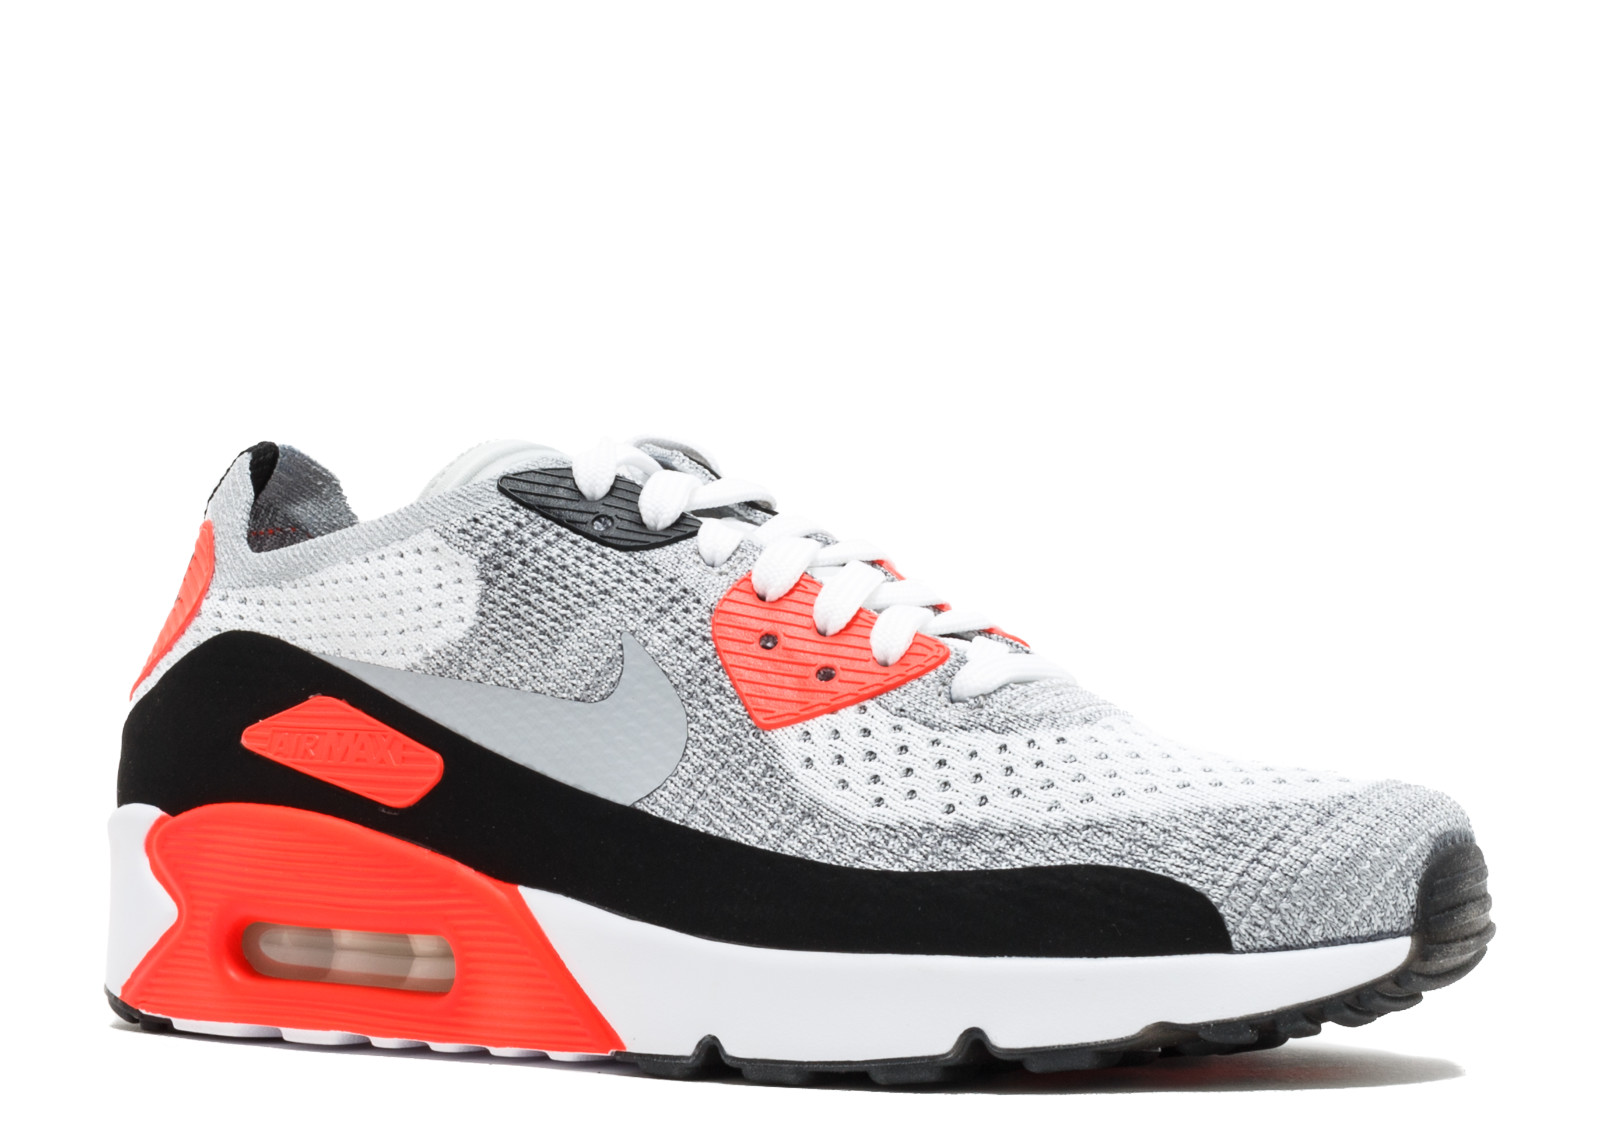 Nike Air Max 90 Infrared_1 | SNEAKERADDICT.NET